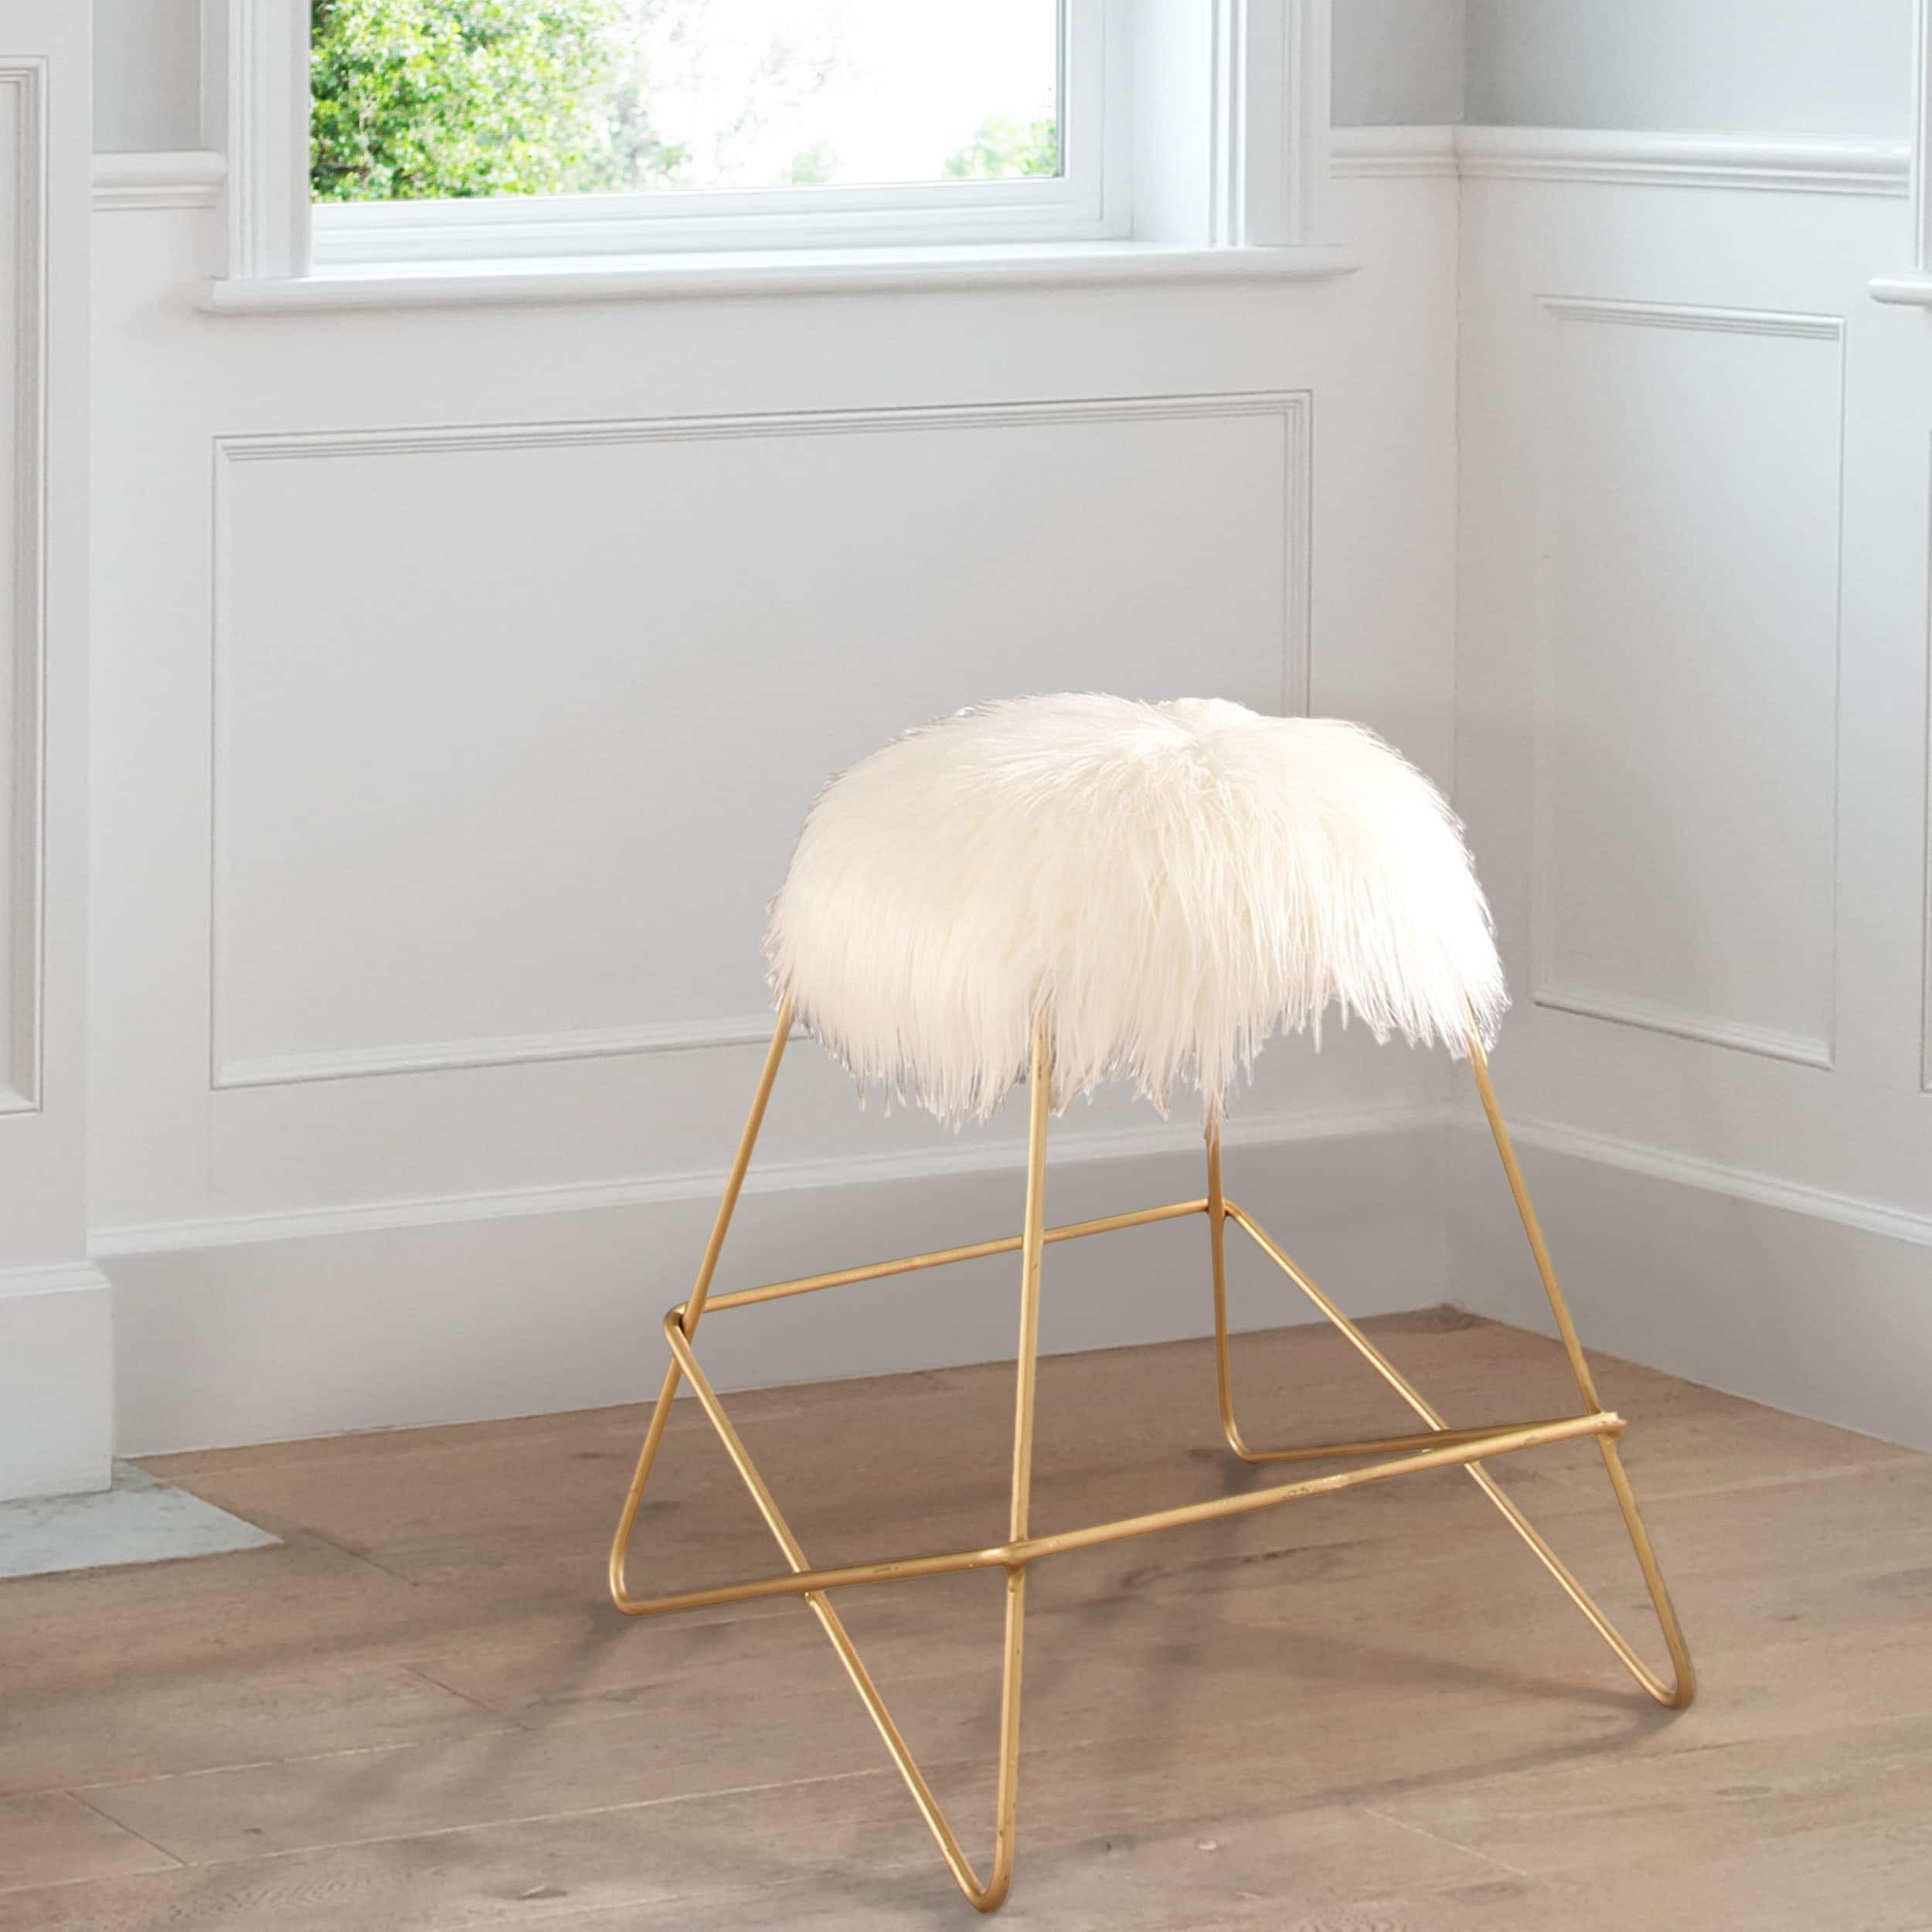 Shop Black Friday Deals On Abbyson Zoe White Faux Fur Iron Vanity Stool On Sale Overstock 15073000